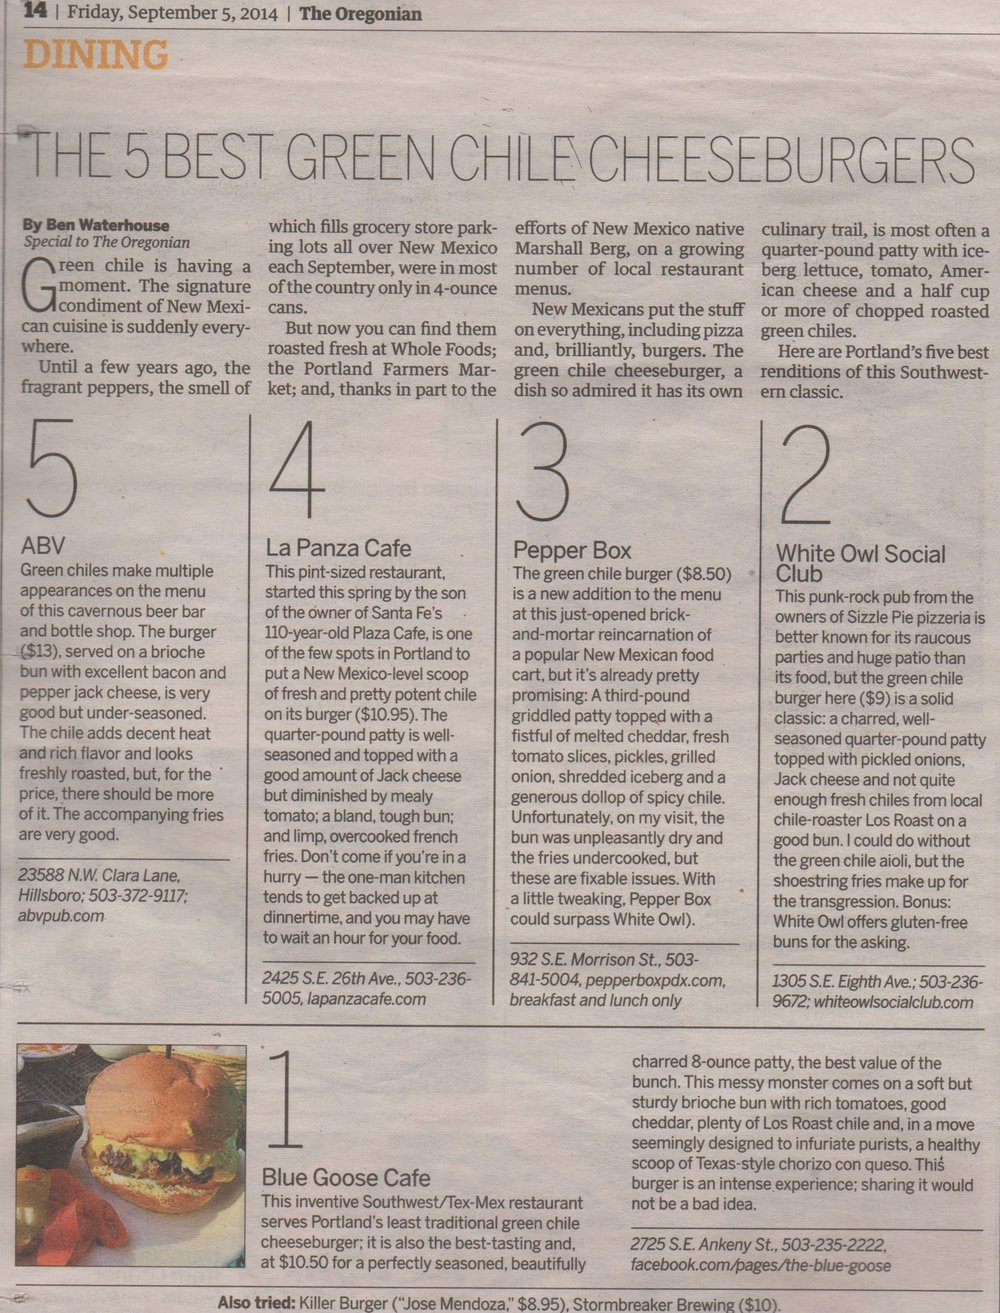 The Oregonian A&E, Friday Sept. 5th, 2014